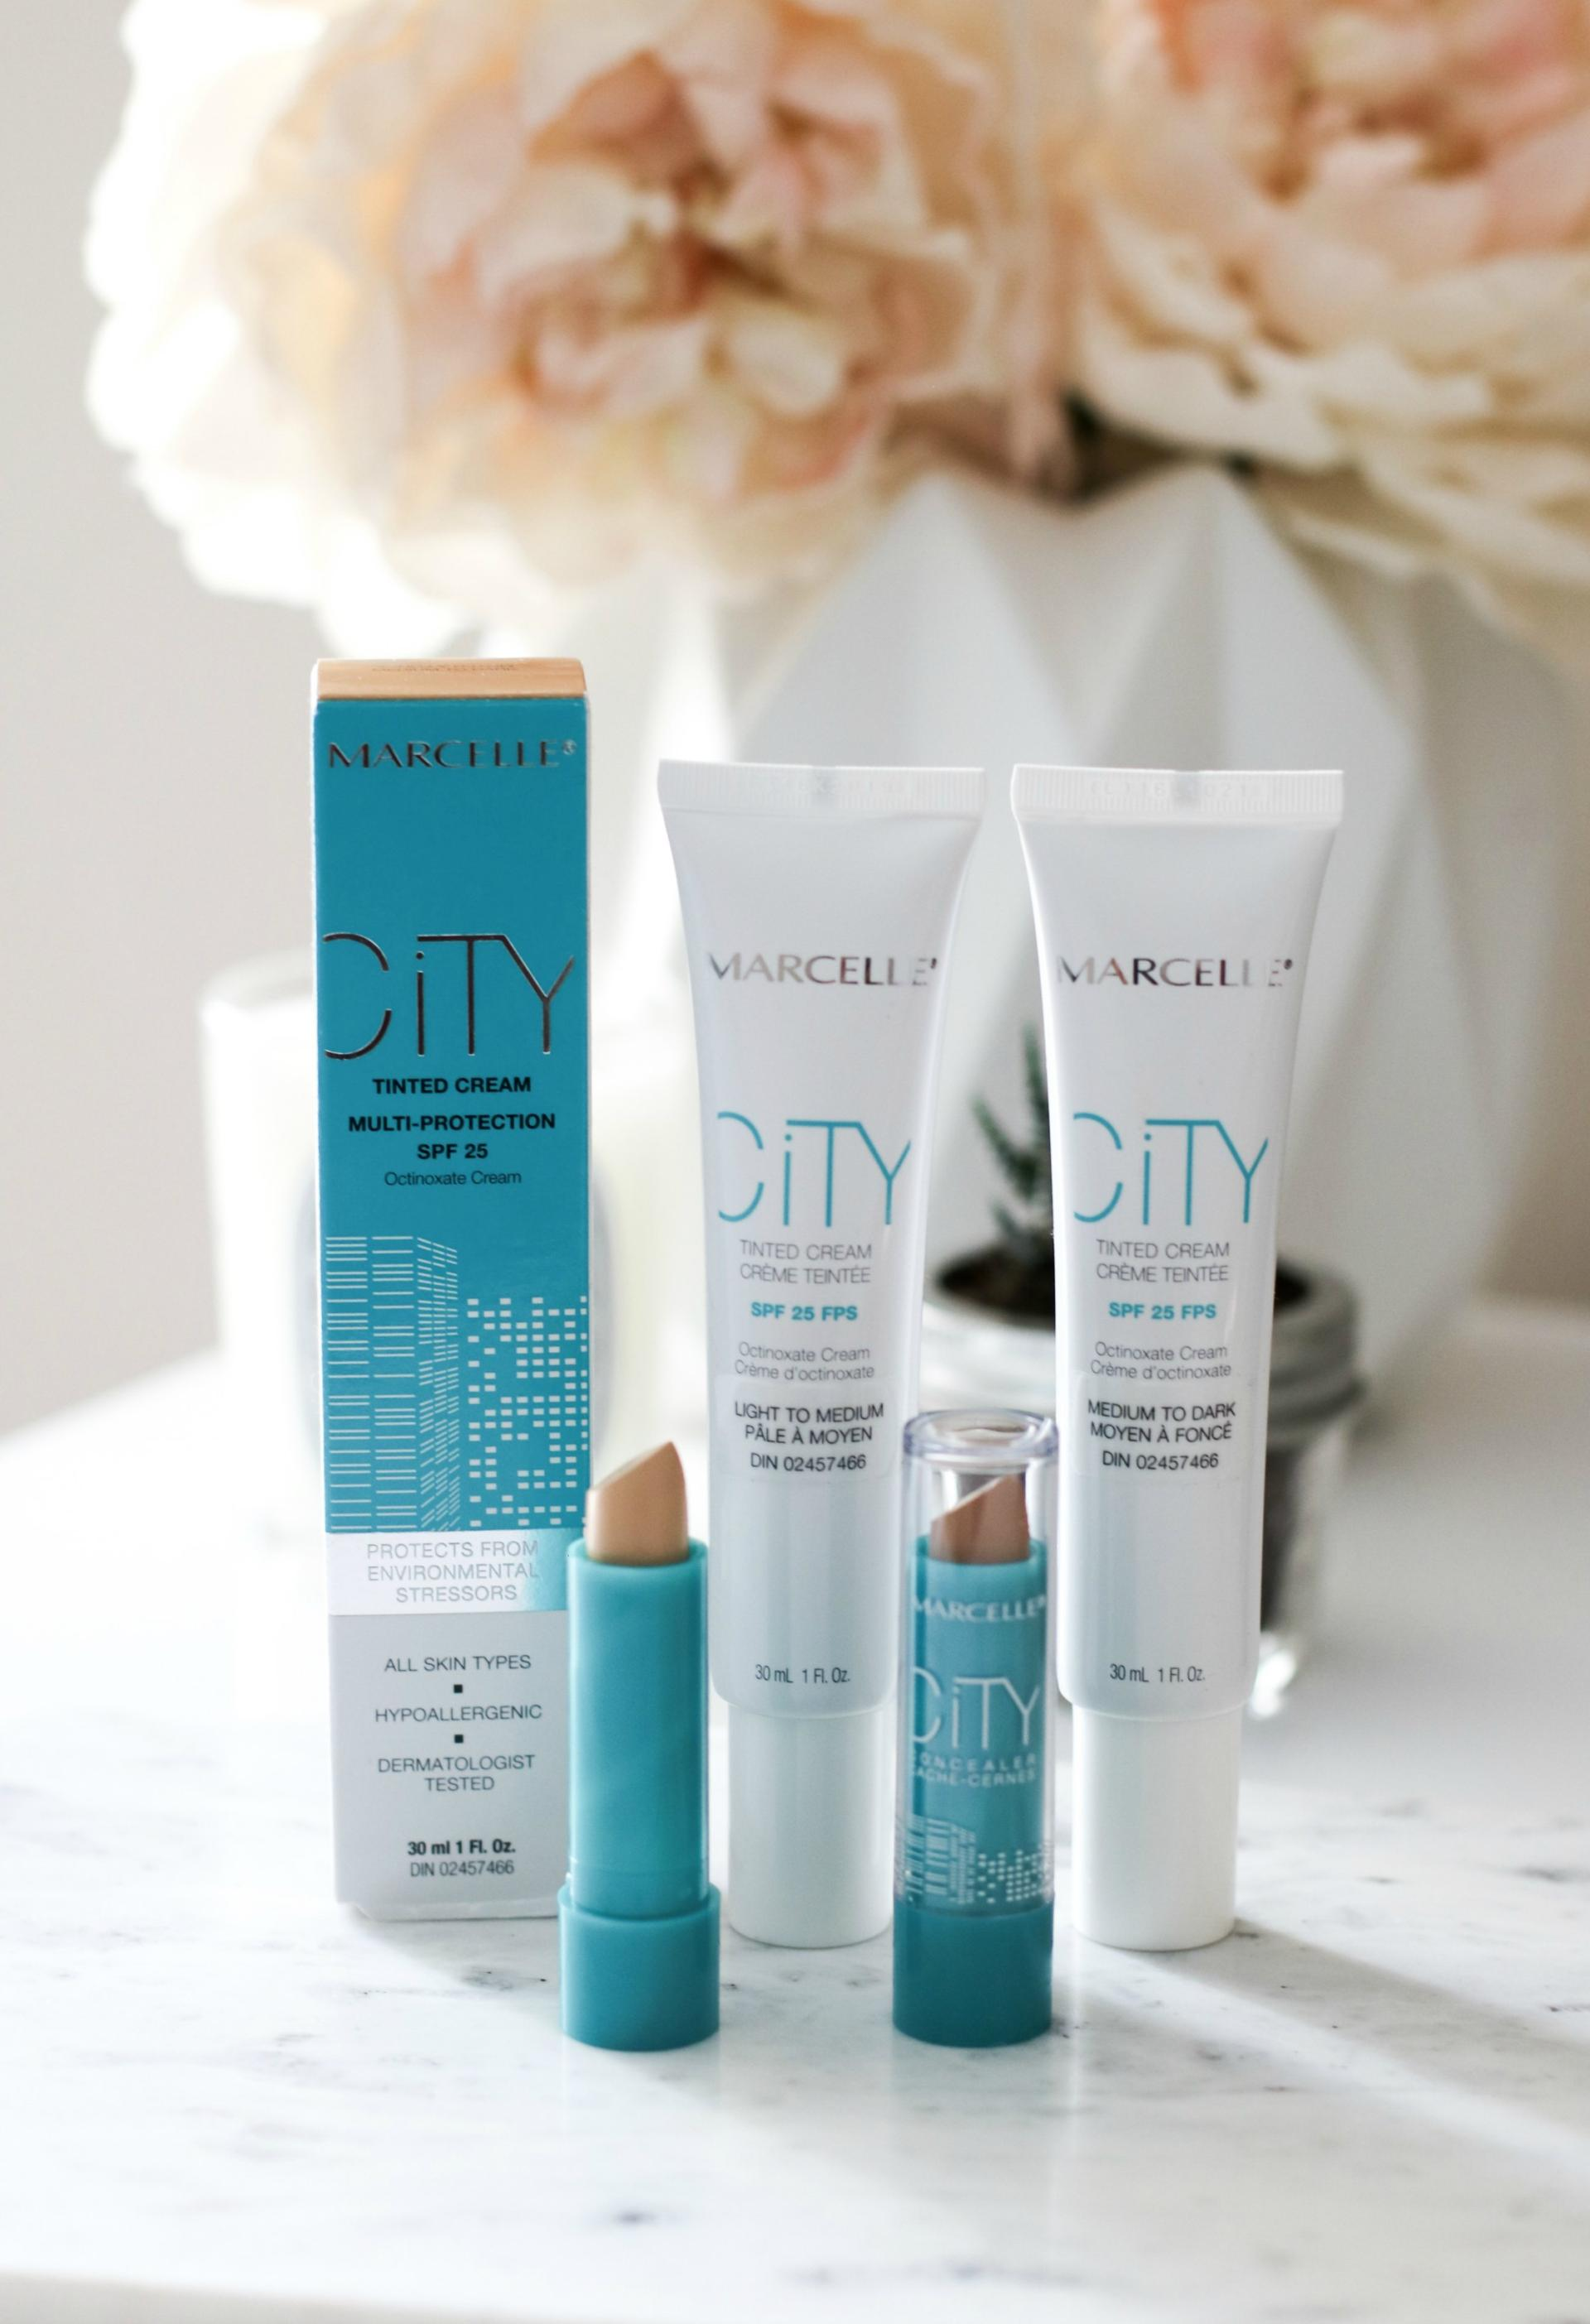 Marcelle City Tinted Moisturizers and Concealers